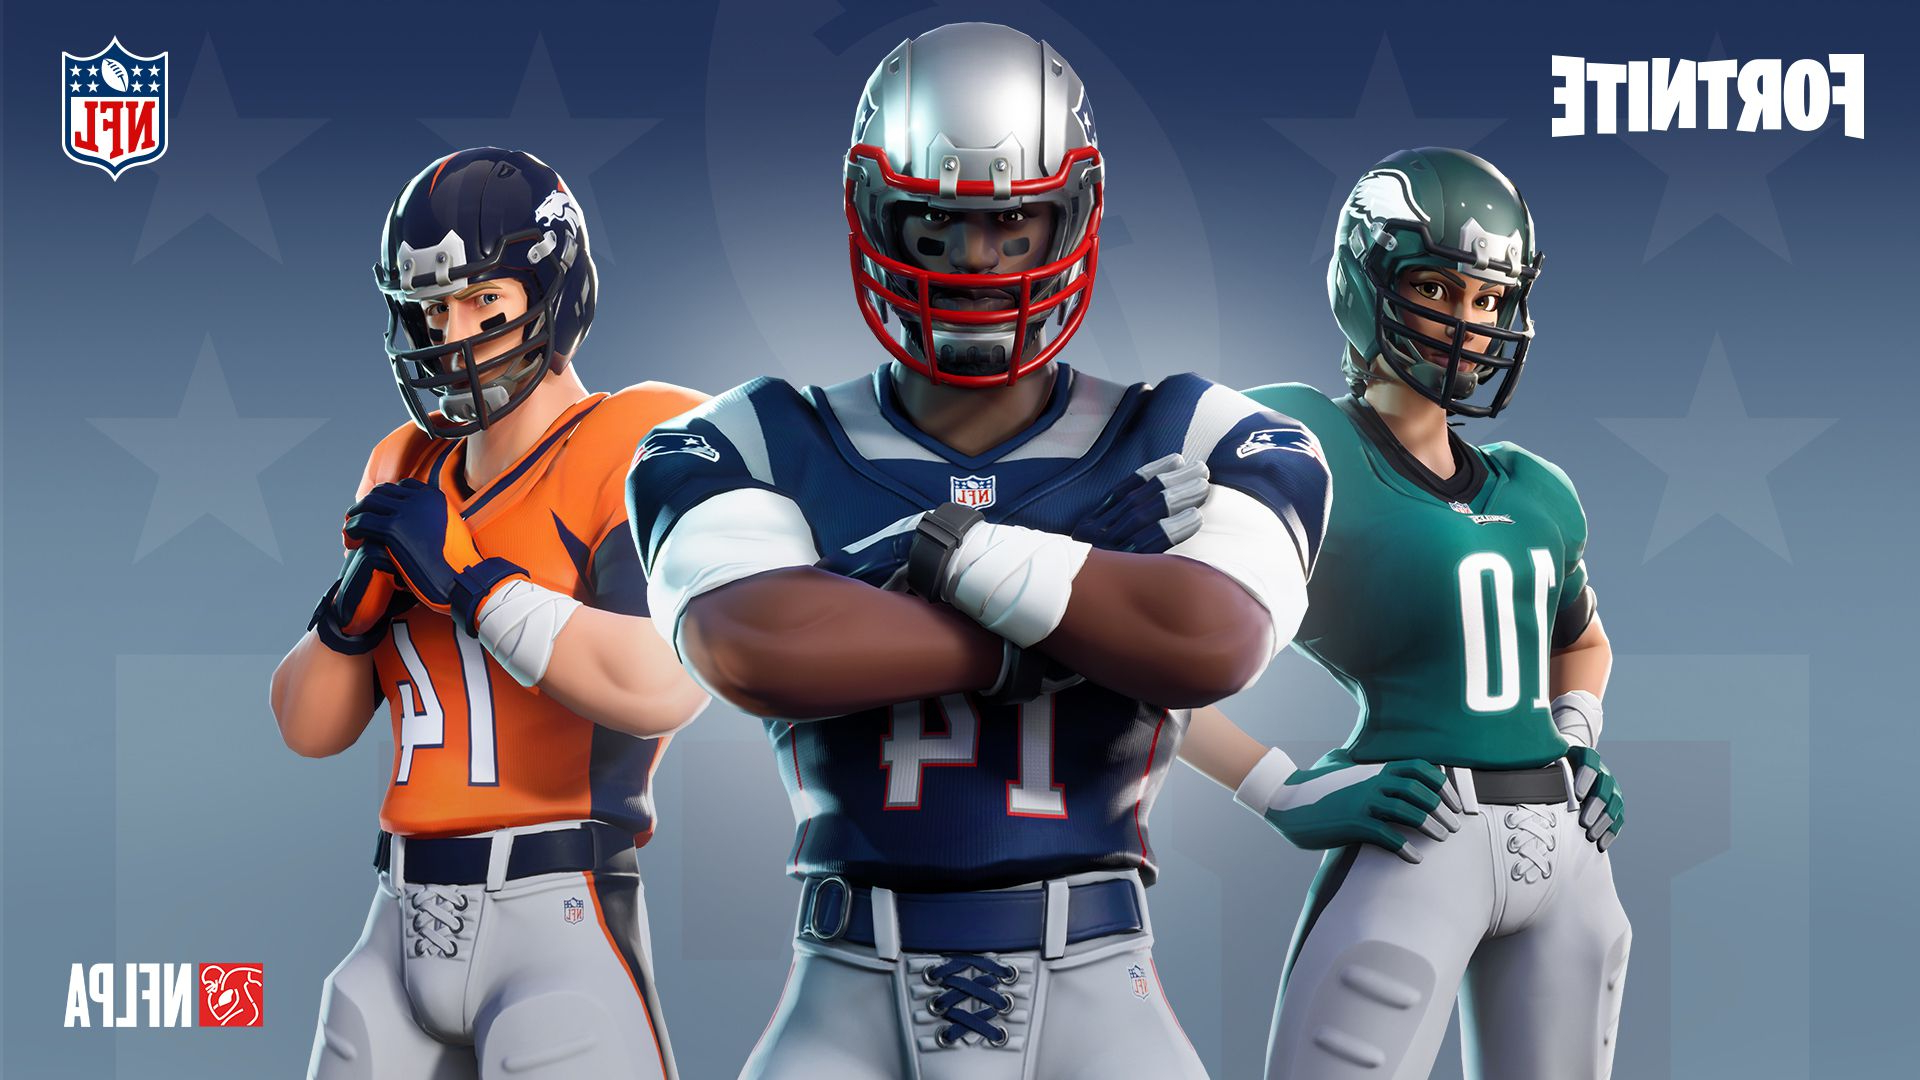 ab5c57124fb Technology: NFL skins are coming to Fortnite - PressFrom - US